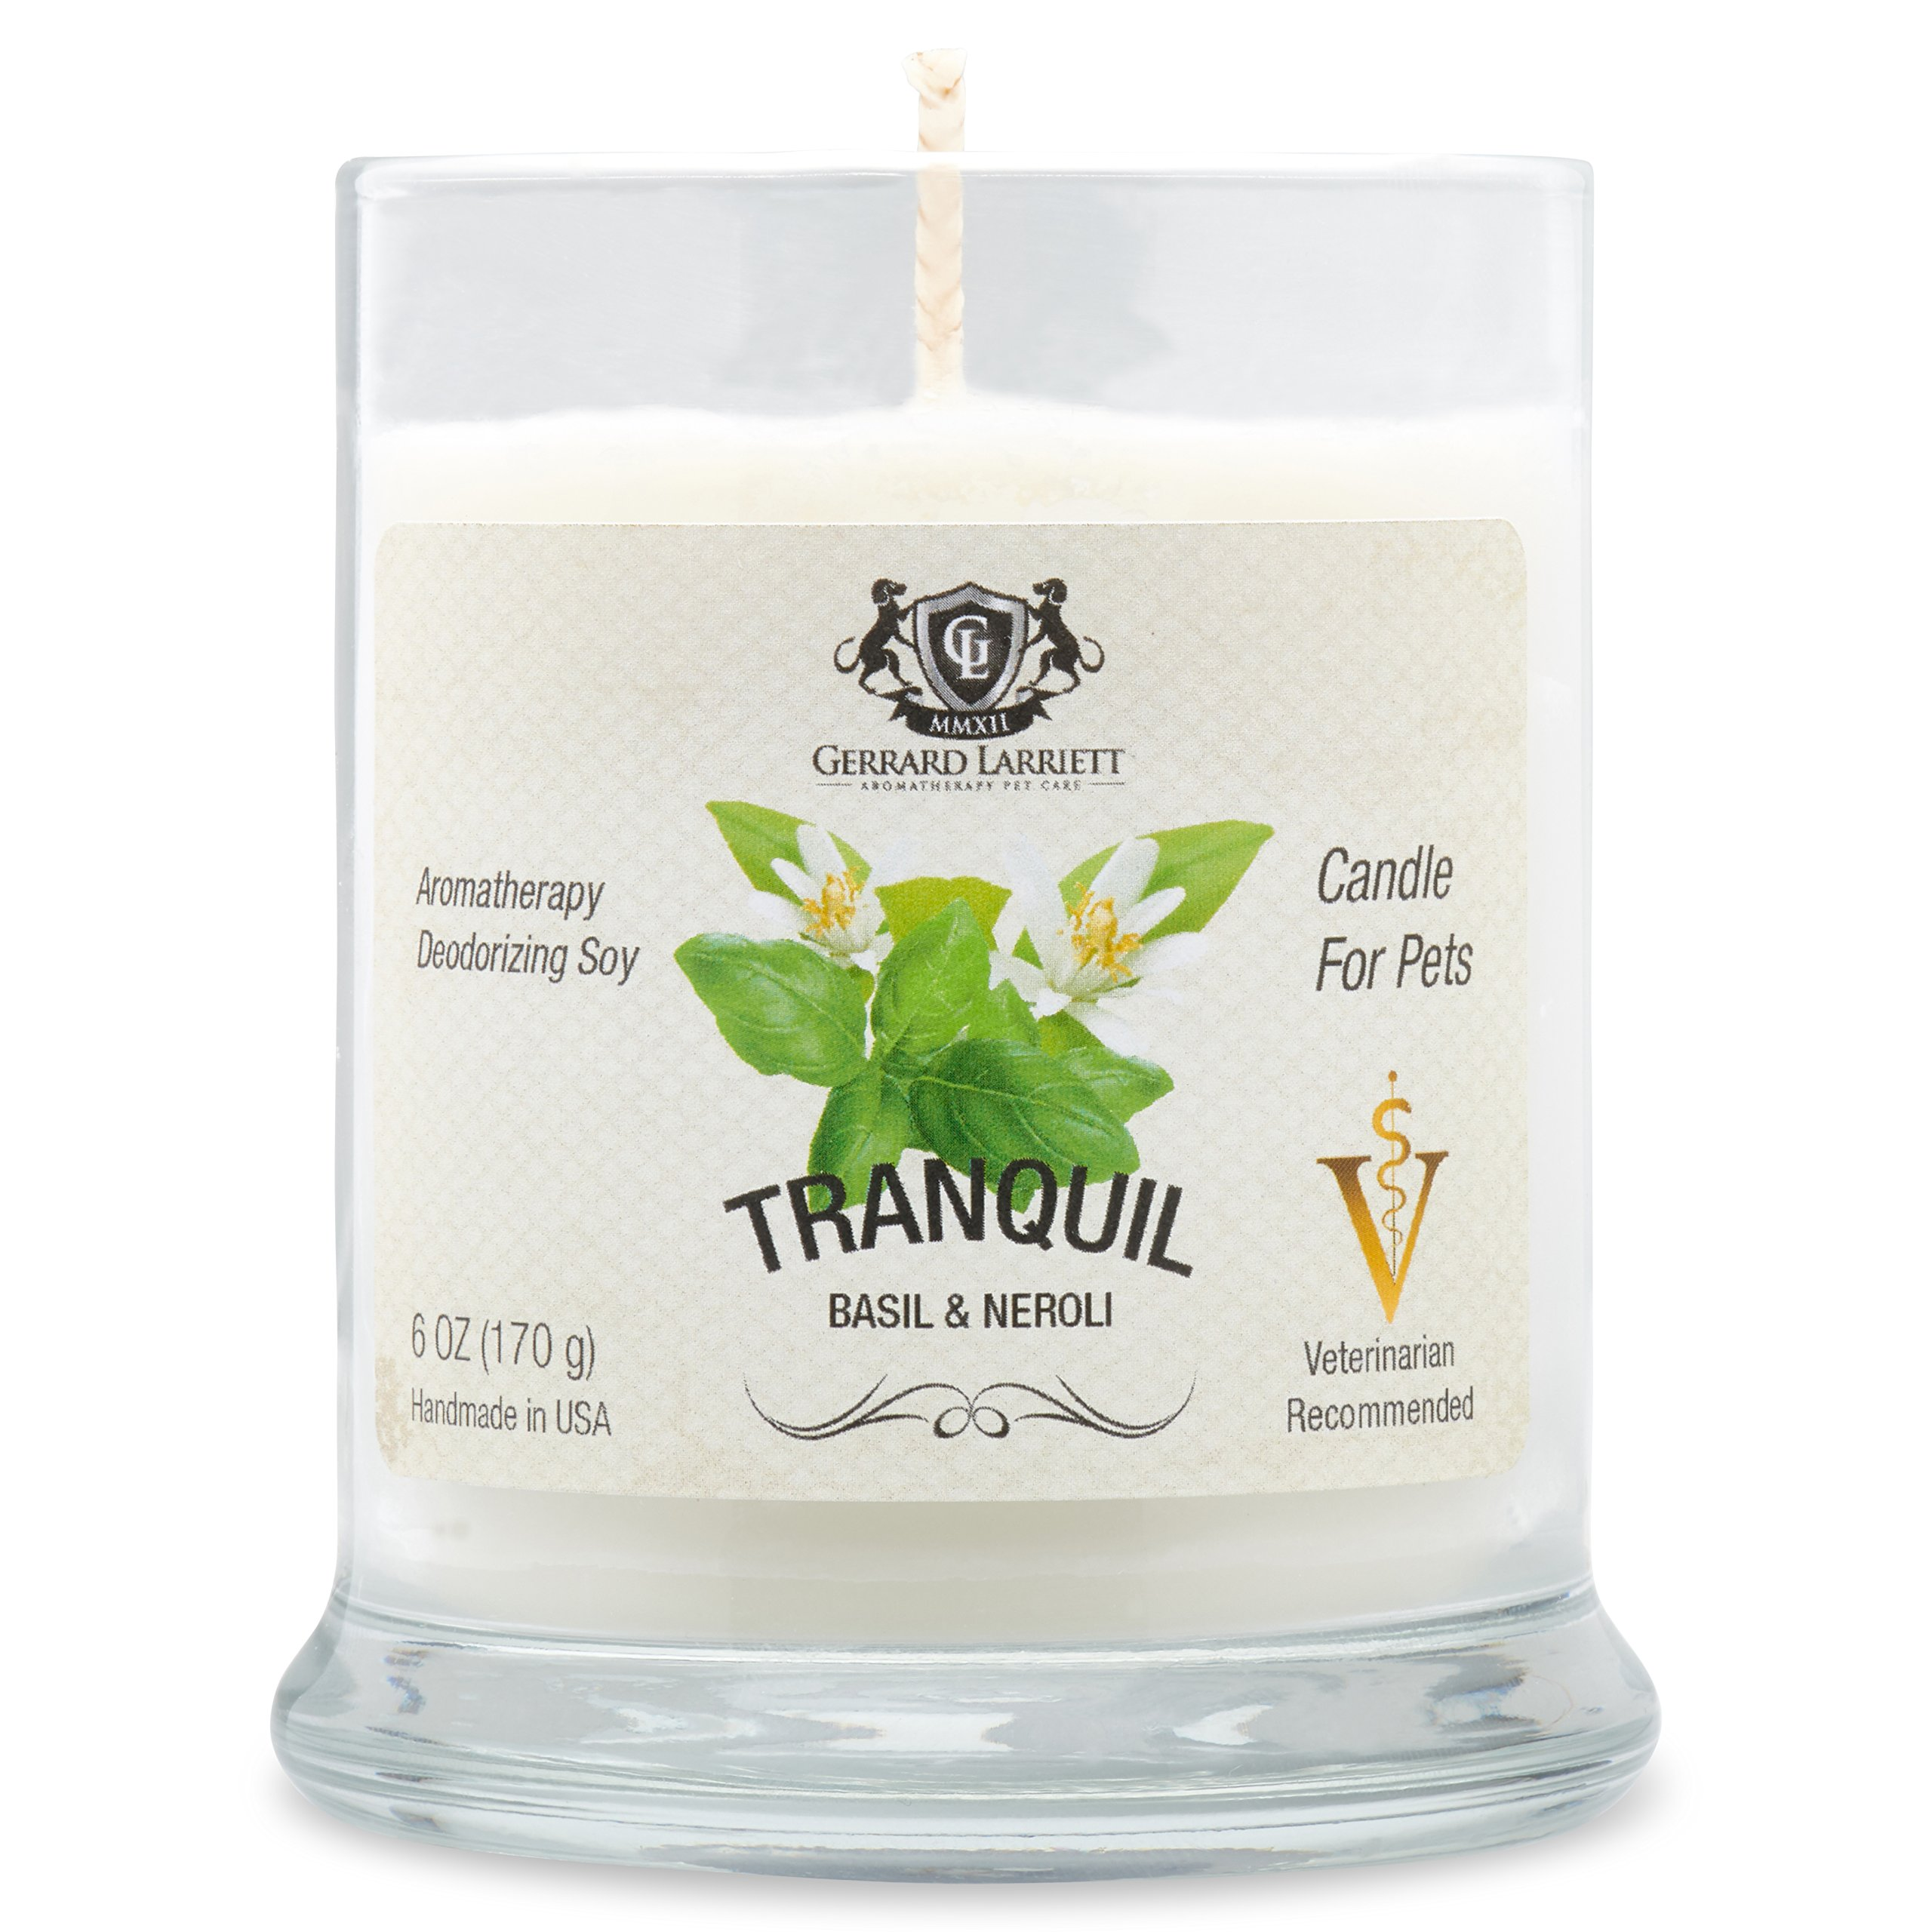 Aromatherapy Deodorizing Soy Candle For Pets, Candles Scented, Pet Odor Eliminator & Animal Lover Gift (Tranquil Basil & Neroli)